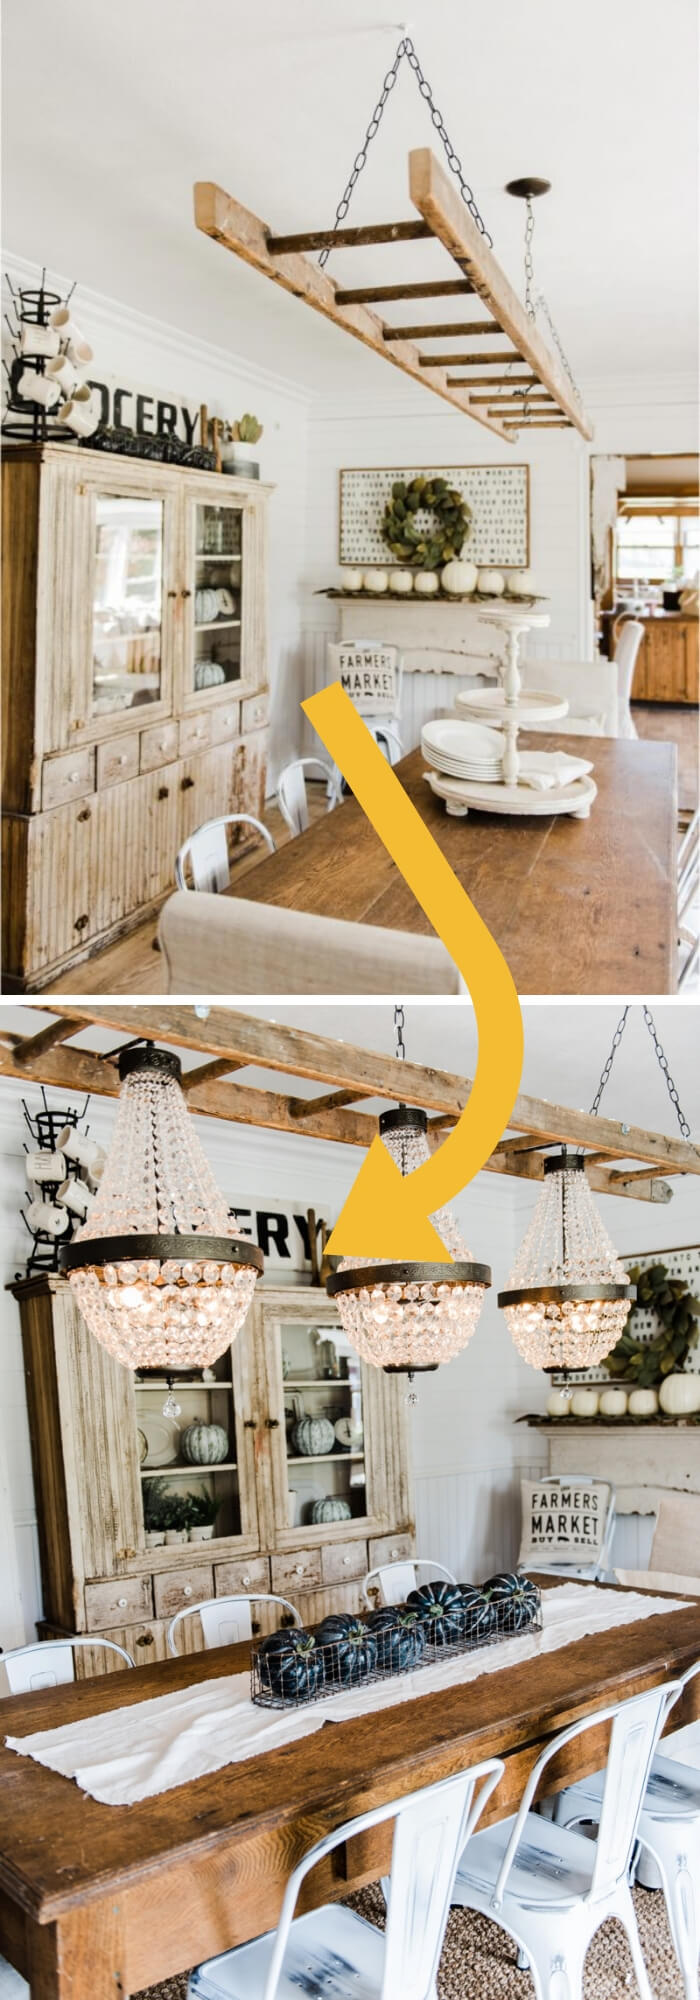 Turn a ladder into a light fixture | Stunning Farmhouse Dining Room Design & Decor Ideas